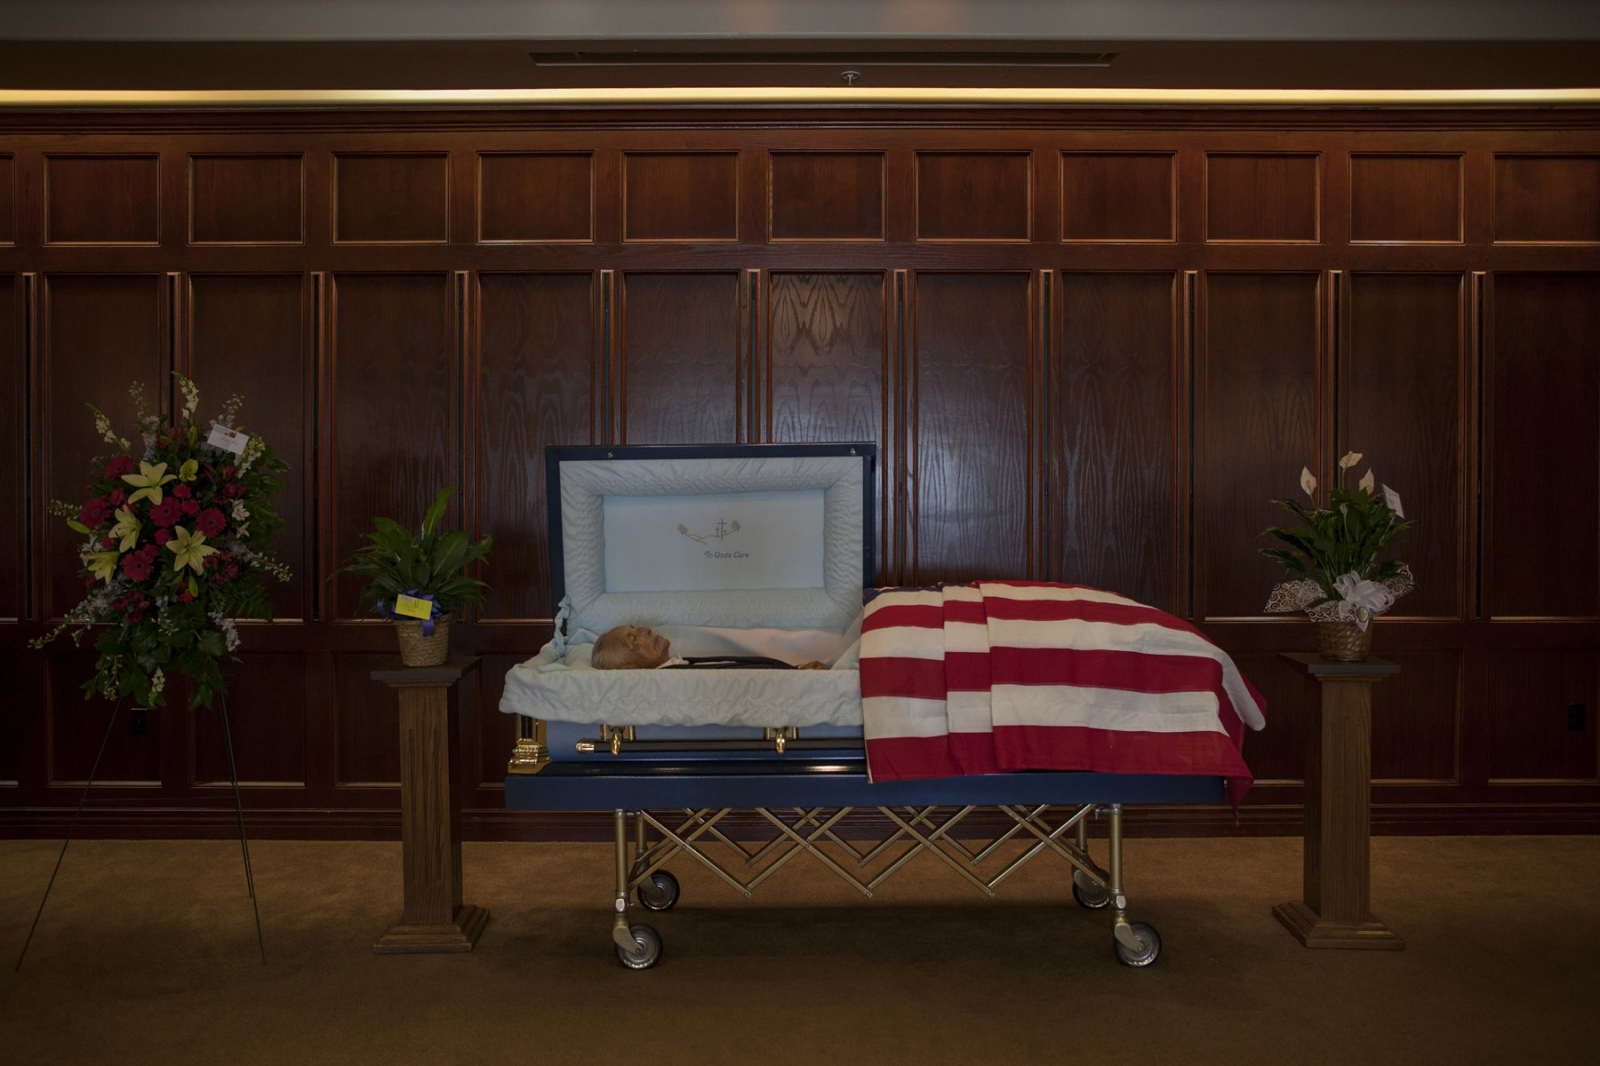 Edmond A. Harjo, a Seminole Code Talker who served in Europe during World War II as a Private First Class, is seen in his casket before a wake service on Thursday, April 3, 2014 at the Swearingen Funeral Home in Seminole, Oklahoma. Mr. Harjo returned to the US after active duty in 1944 and remained in Maud, a nearby town, until his death at 96 on Monday, March 31, 2014.